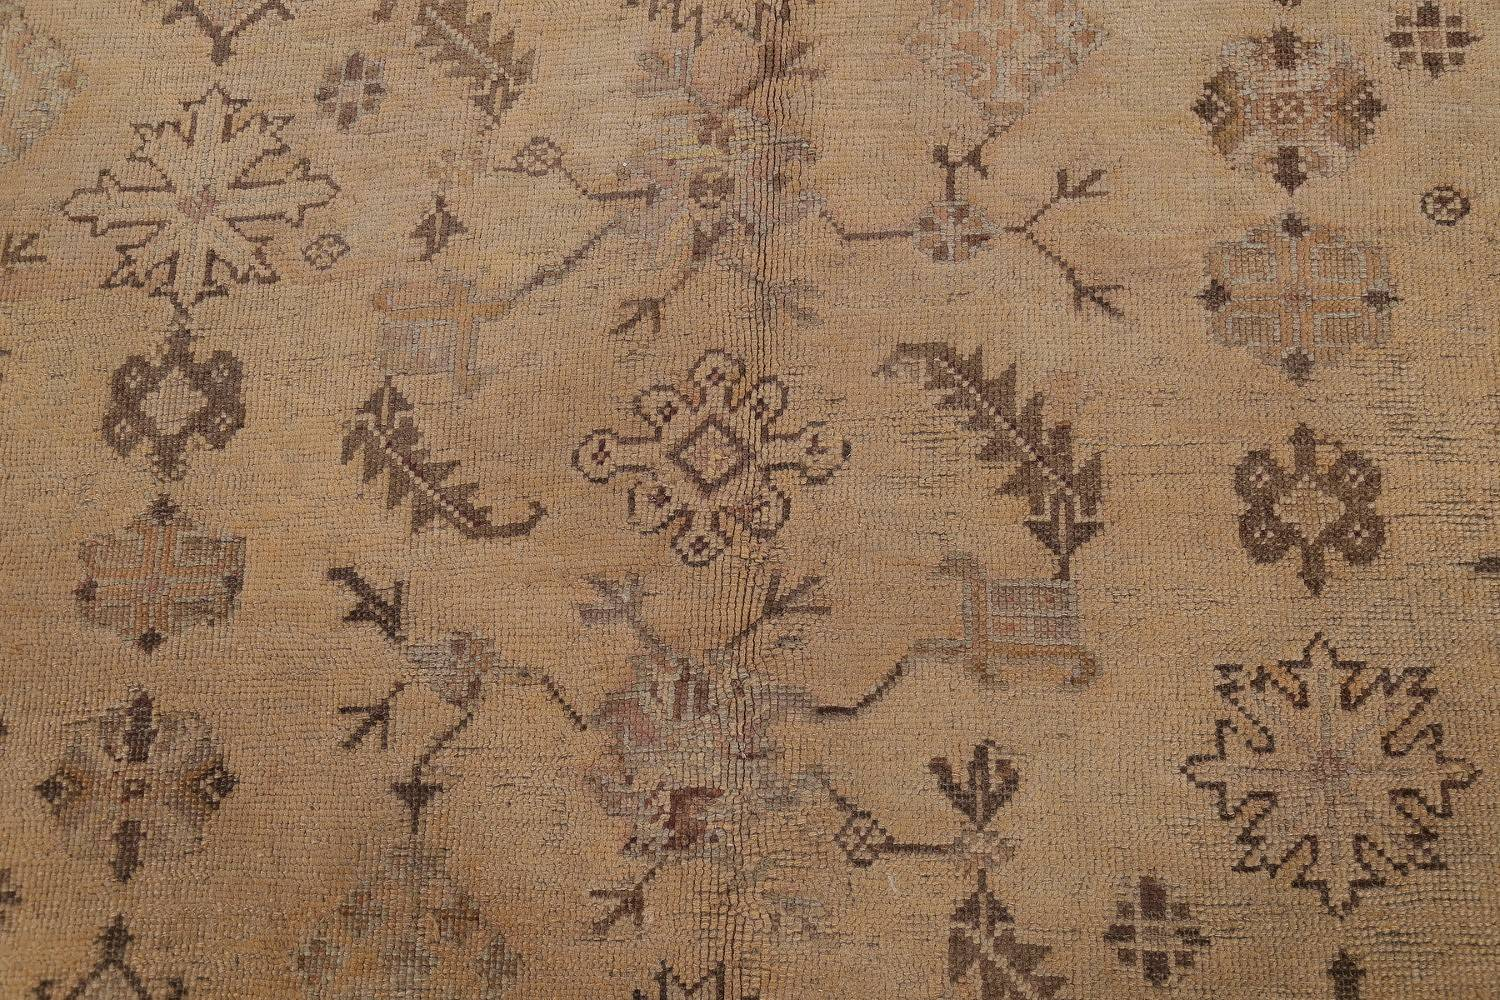 Pre-1900 Antique All-Over Geometric Muted Color Oushak Turkish Area Rug 10x13 image 11